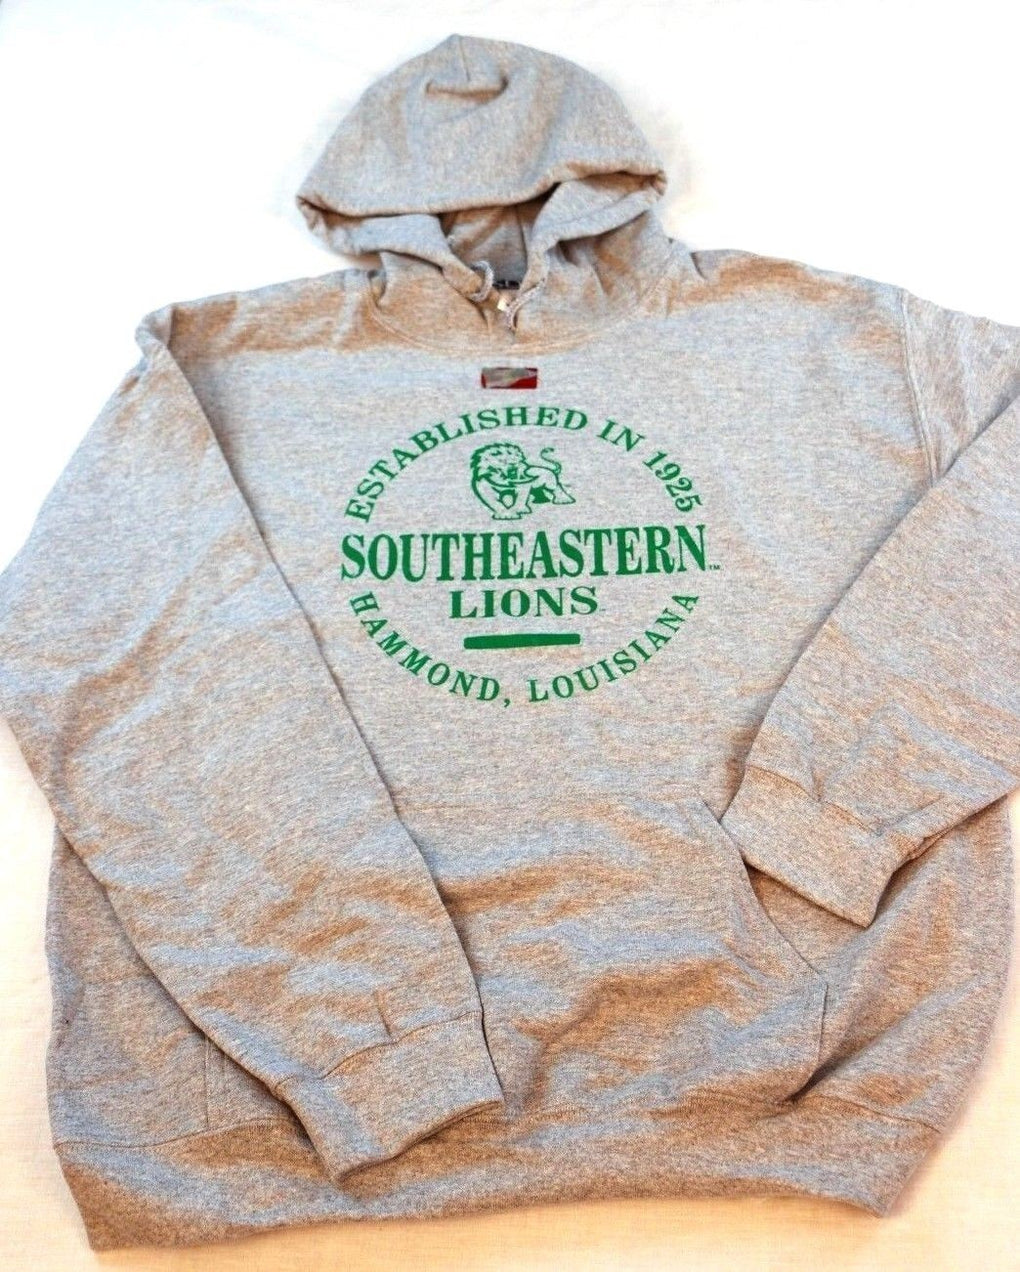 Southeastern Louisiana Lions Hooded Sweatshirt (Large, Gray) - Fazoom